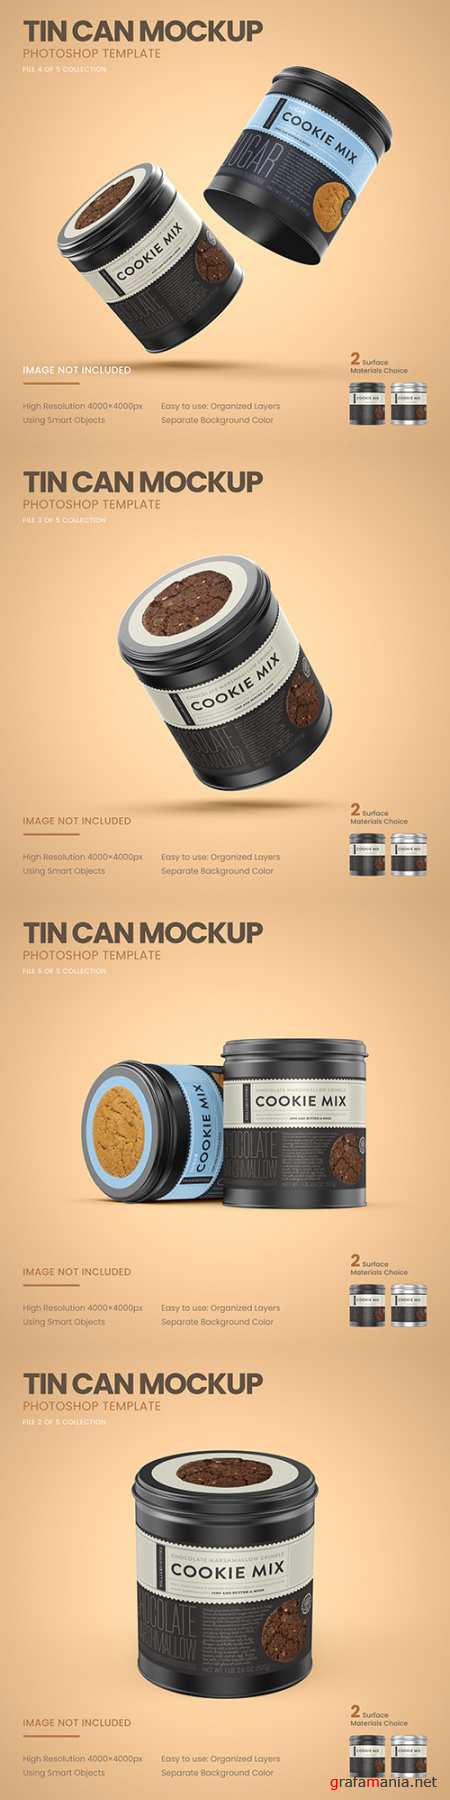 Small tin cans for cookies design Mockup